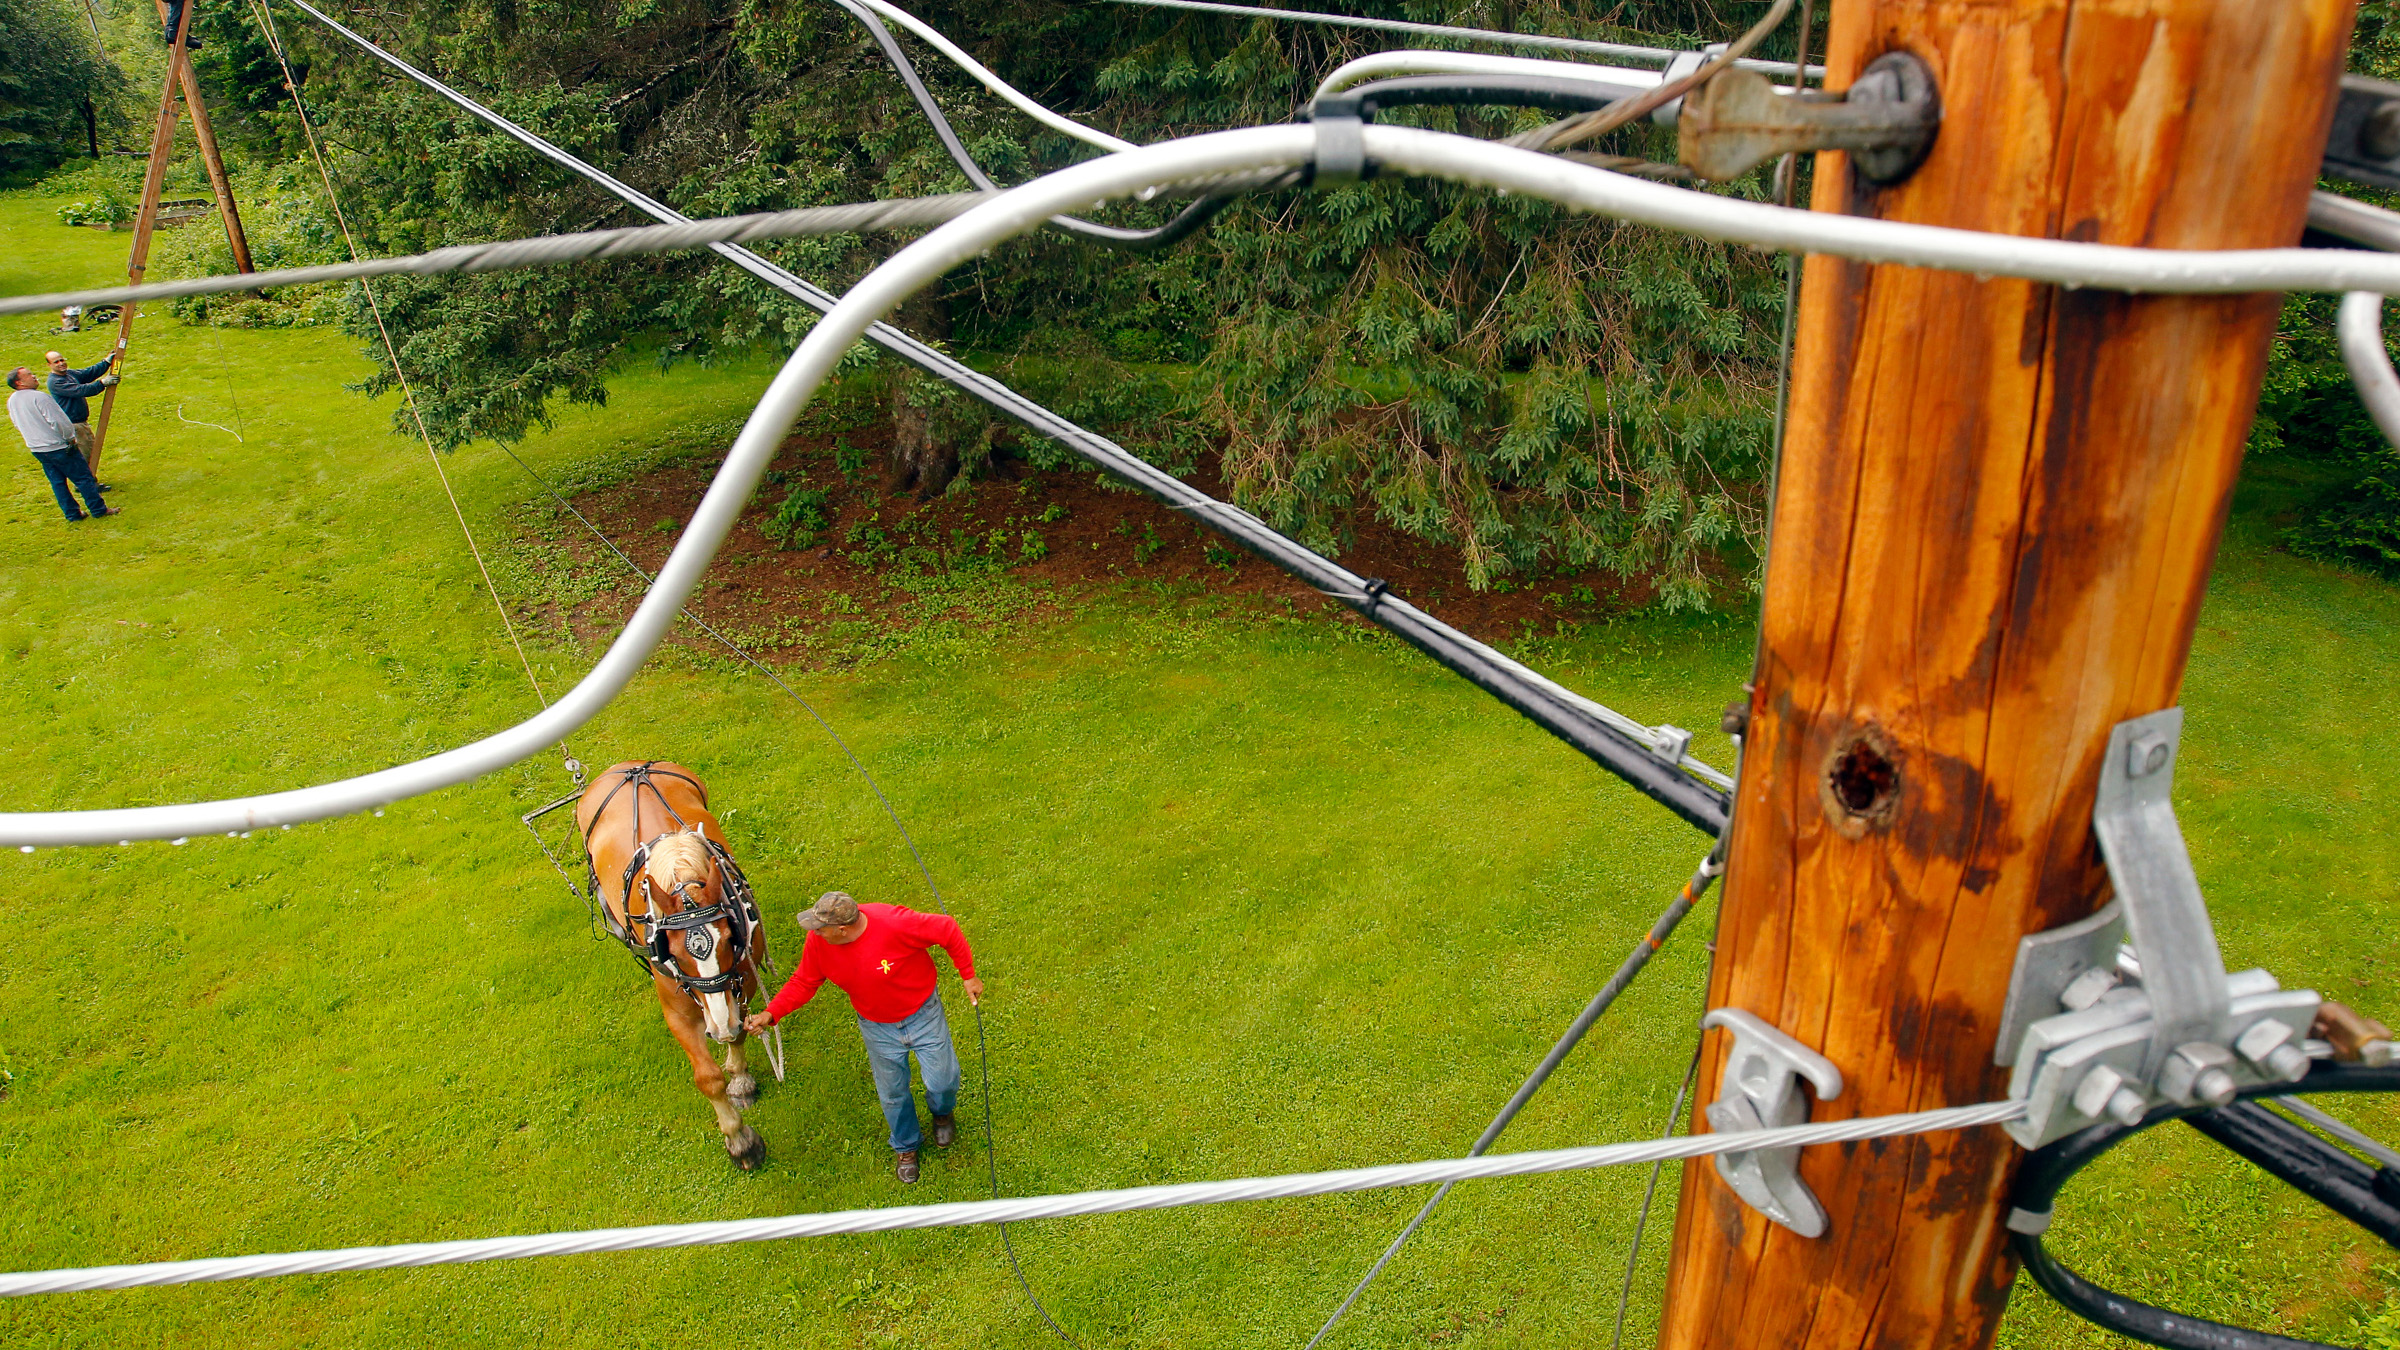 DATE IMPORTED:June 27, 2011Claude Desmarais and his Belgian draft horse Fred pull fiber optic cables between utility poles in East Burke, Vermont June 24, 2011. Fairpoint Communication hires Desmarais and Fred to pull fiber optic cable through difficult terrain in a effort to bring high speed internet to all of Vermont by 2013. Photo taken June 24.